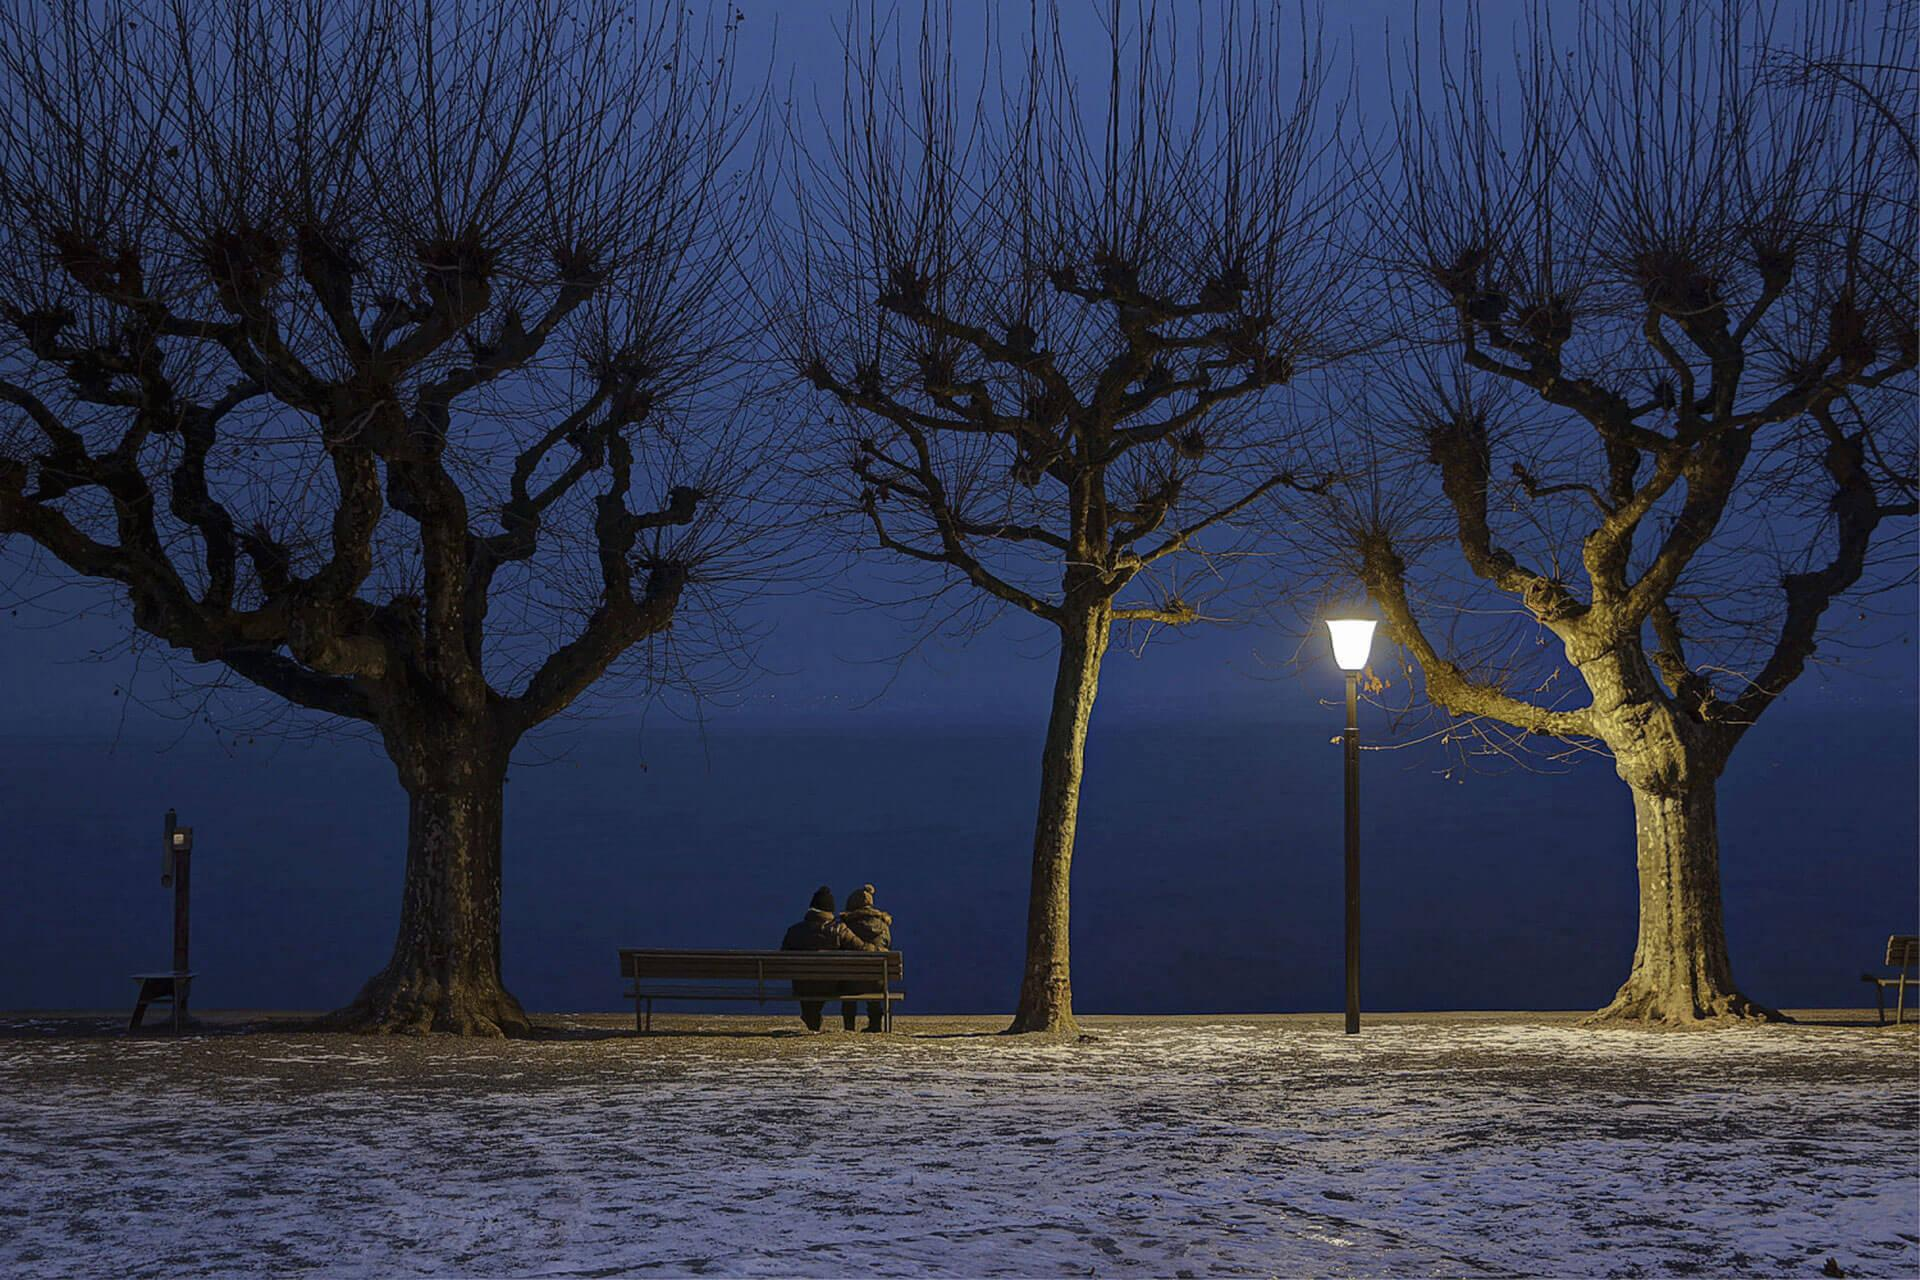 Schréder luminaires light this waterfront so people can admire the stunning landscape all year long